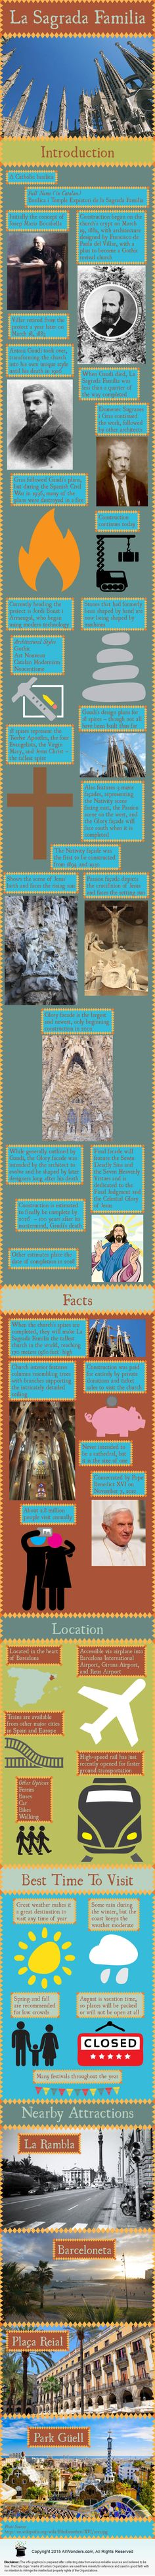 The La Sagrada Familia infographic shows details about the La Sagrada Familia in Spain. Get travel information like fast facts, when to visit, weather, places to visit, hotels, restaurants, things to do, transportation and much more.